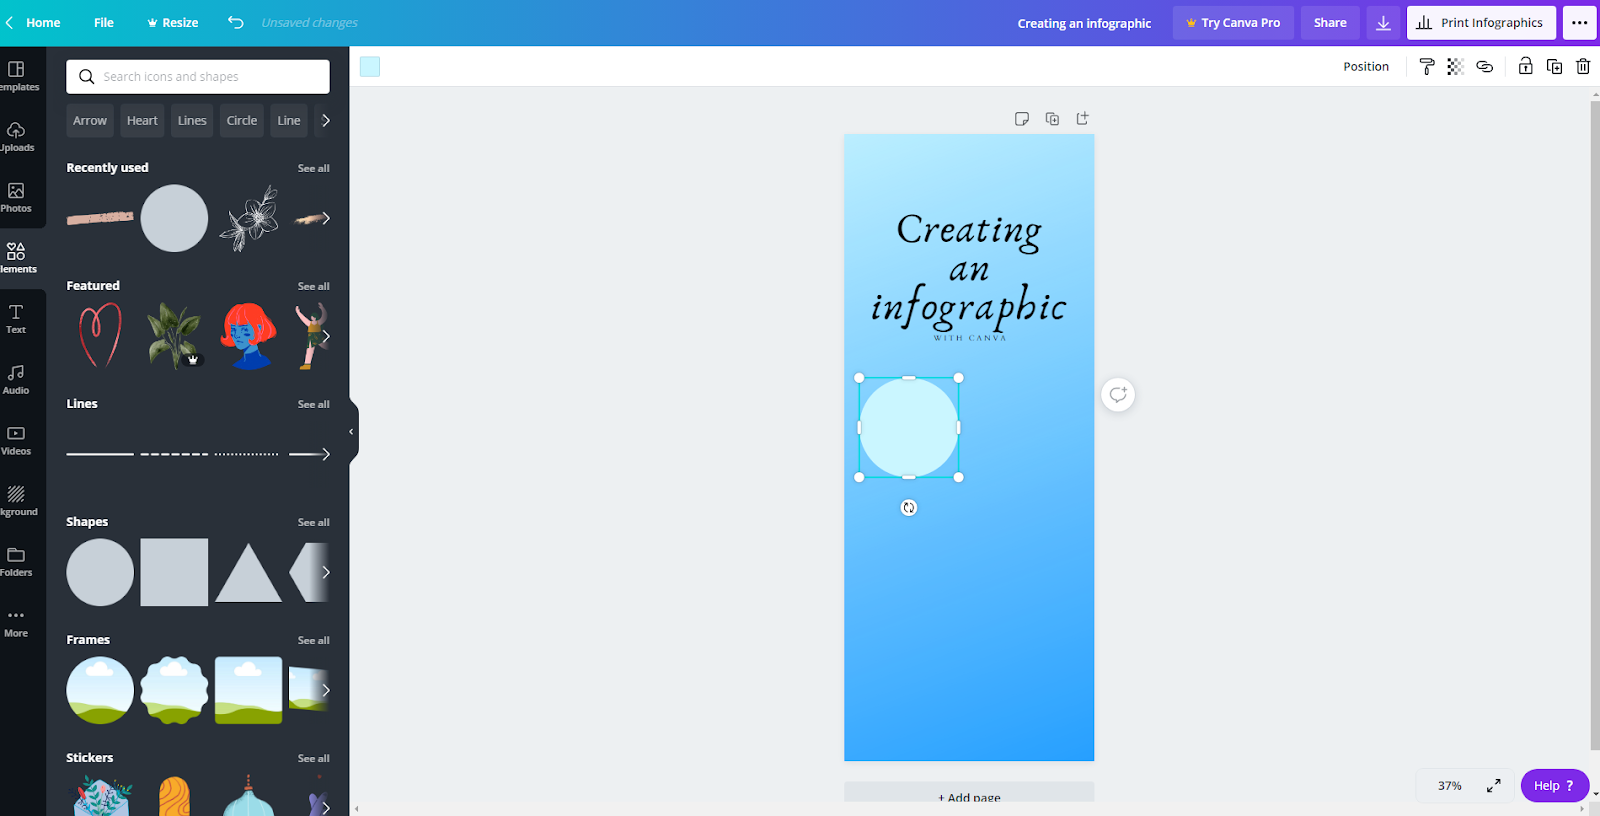 Canva interface showing a blue infographic in progress